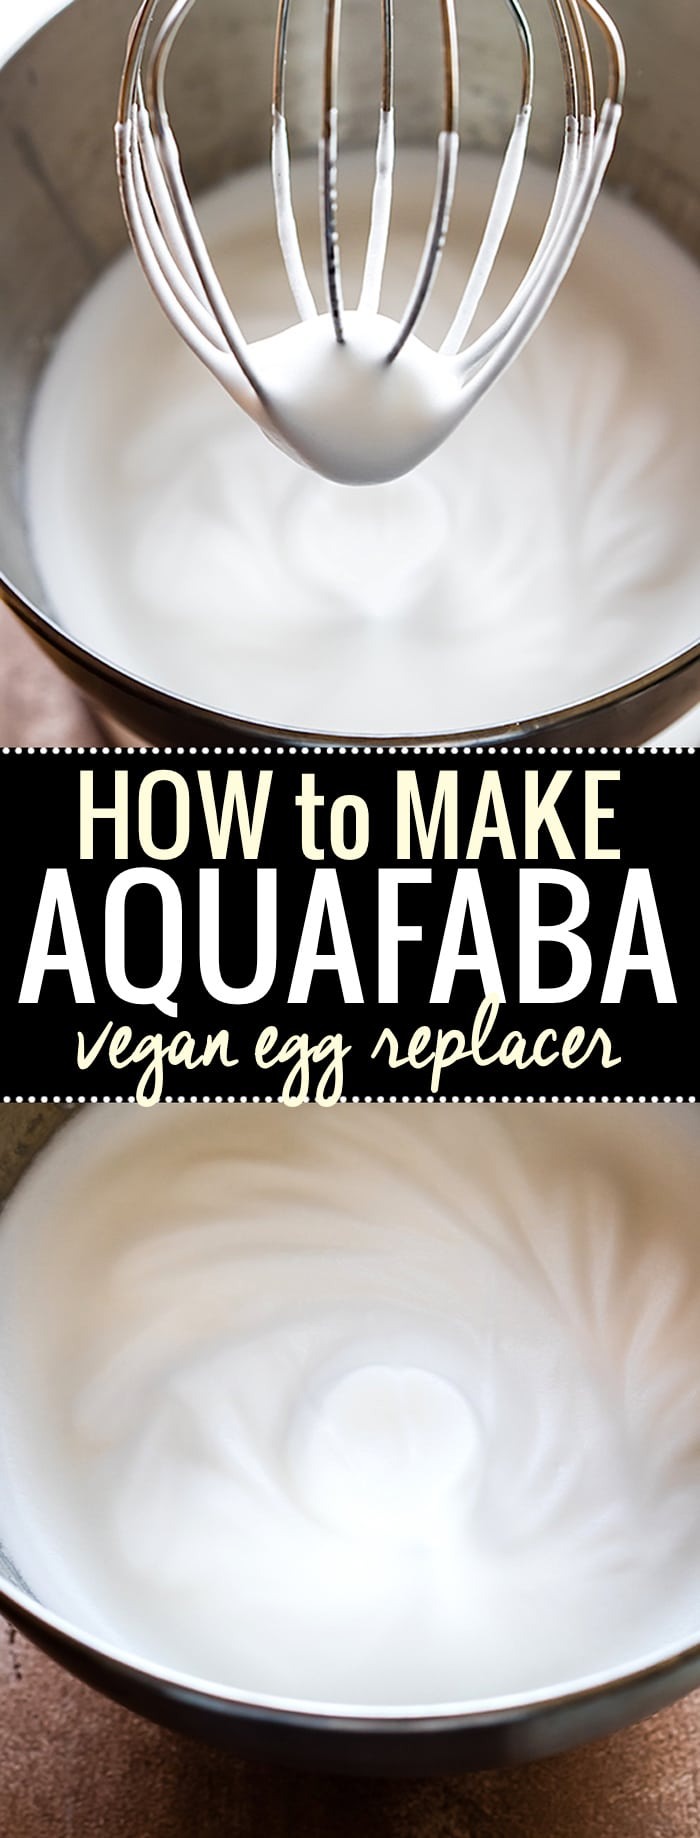 Aquafaba is the new trend in Vegan baking and Egg Free baking. It's easy, healthy, and versatile! You can whip it up to use in place of egg whites, or just use the juice (Chickpea brine) for whole egg baking. Learn How to make Aquafaba with just a can of chickpeas in this video tutorial. More info and Tips on using Aquafaba on http://www.cottercrunch.com